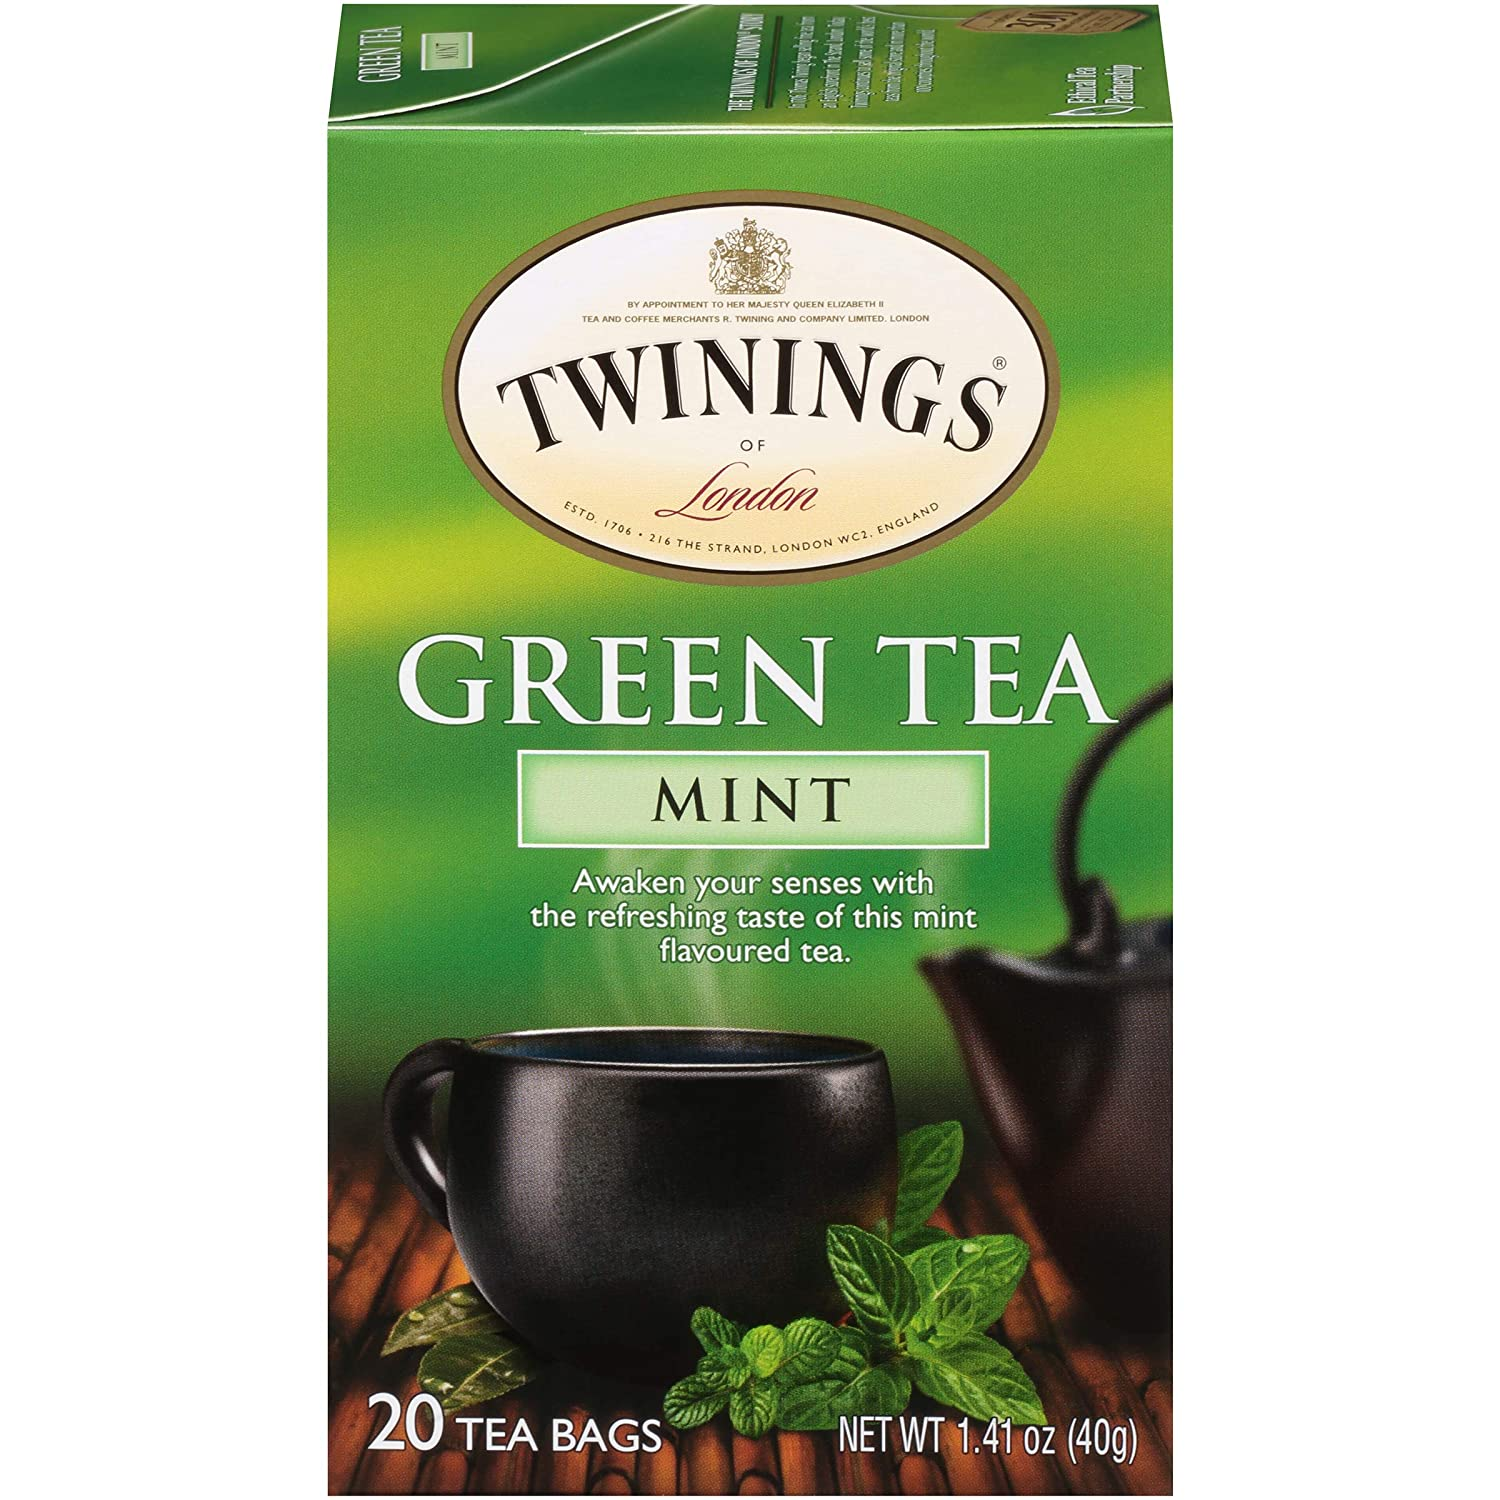 Twinings of London Mint Green Tea Bags, 20 Count